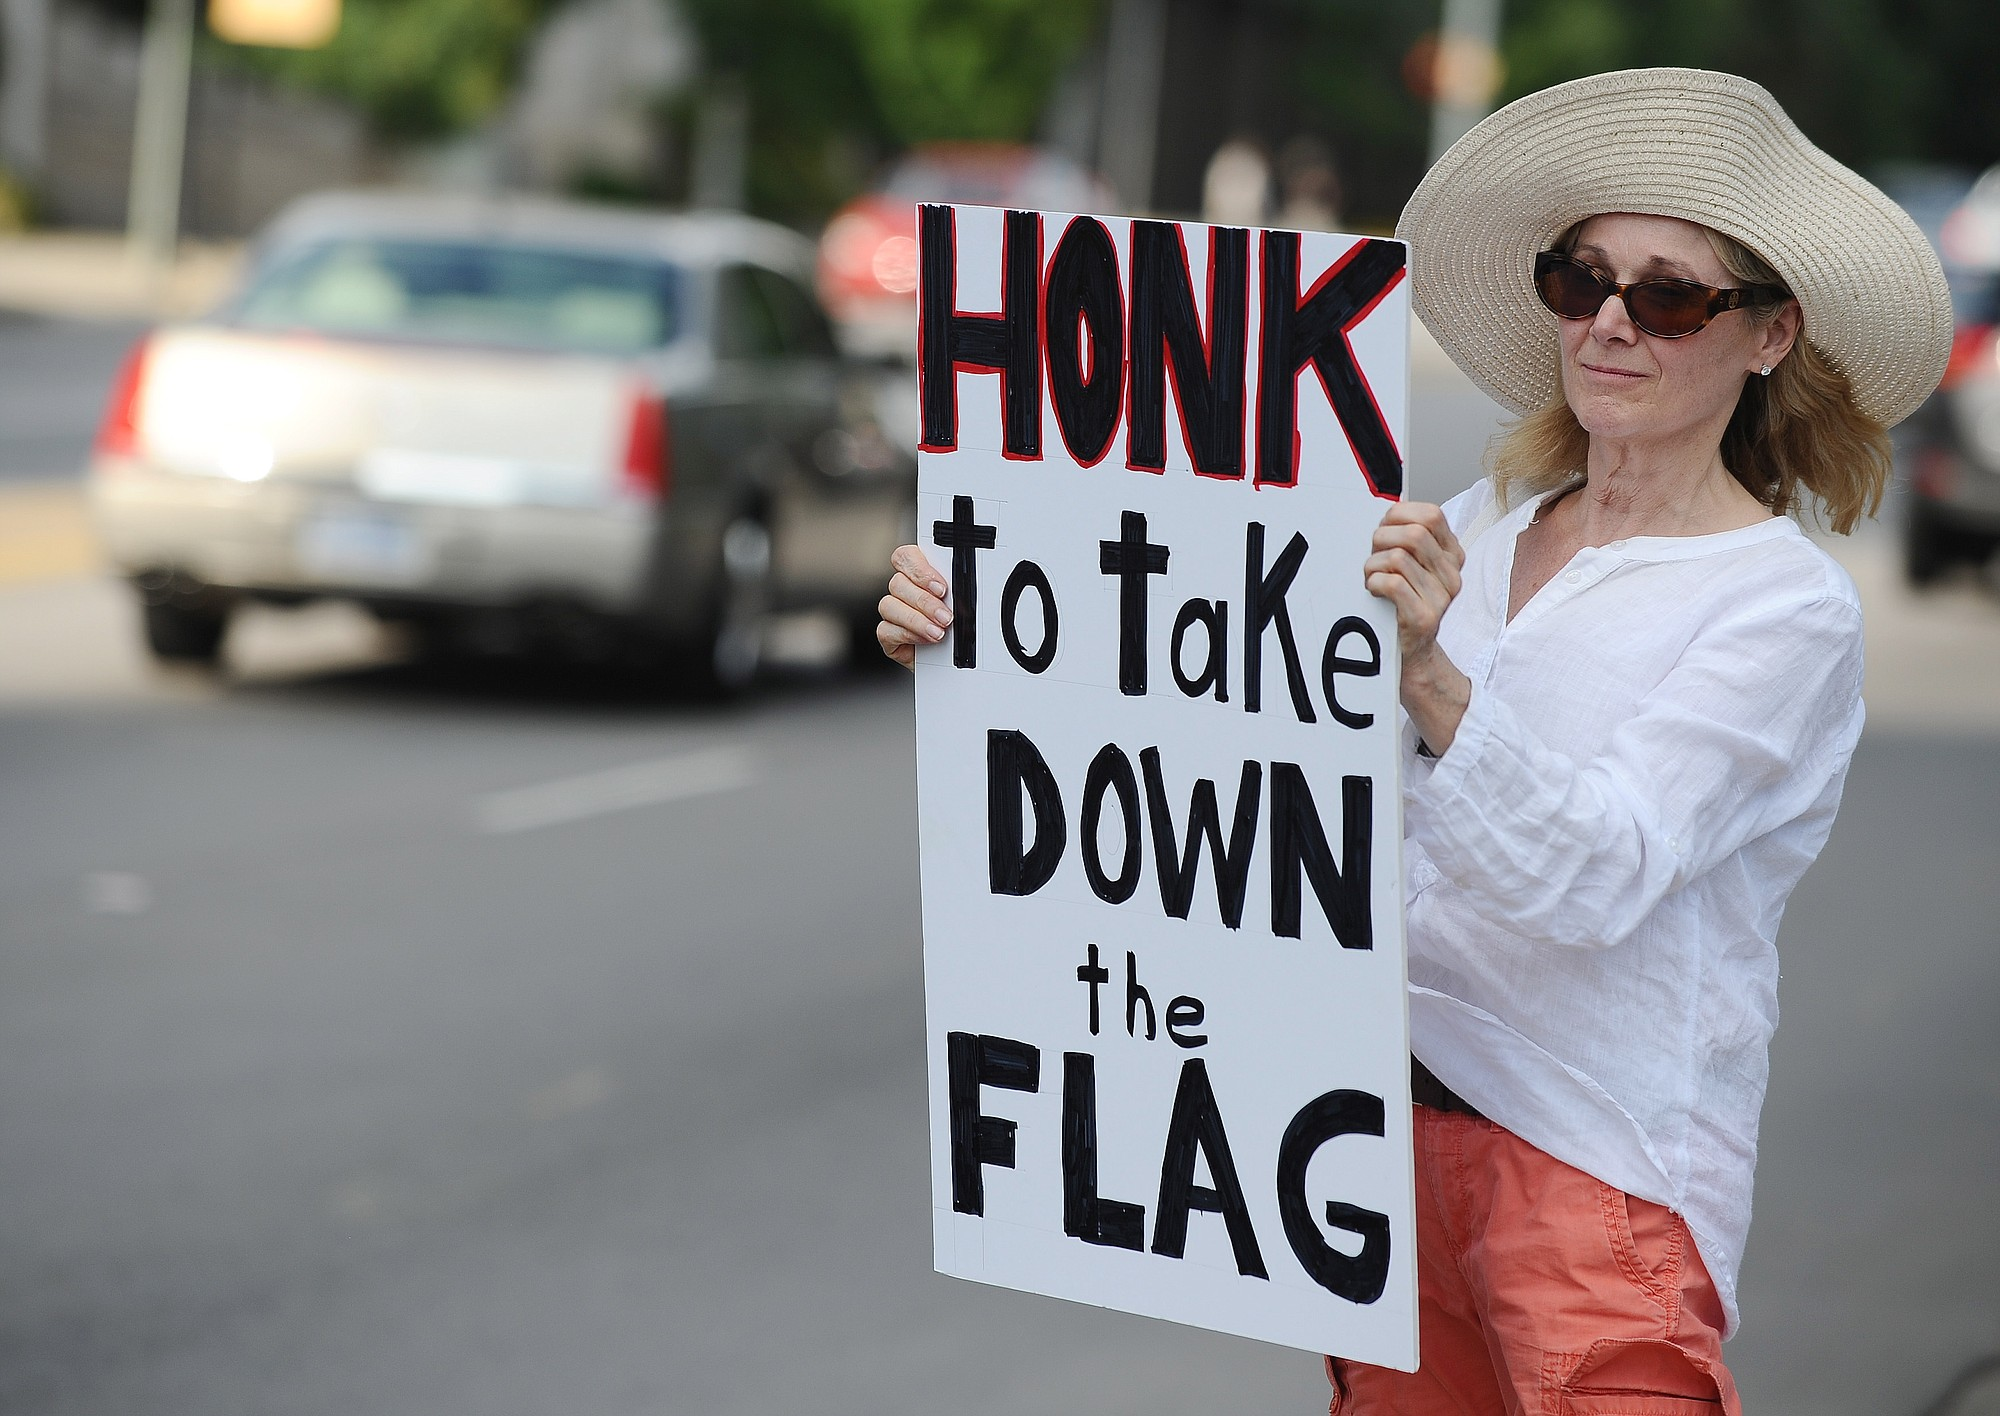 Sheila DiCioccio holds a sign during a rally to take down the Confederate flag at the South Carolina Statehouse on Saturday in Columbia, S.C. Rep. Doug Brannon, R-Landrum, said it's past time for the Confederate flag to be removed from South Carolina's Statehouse grounds after nine people were killed at the Emanuel AME Church shooting.